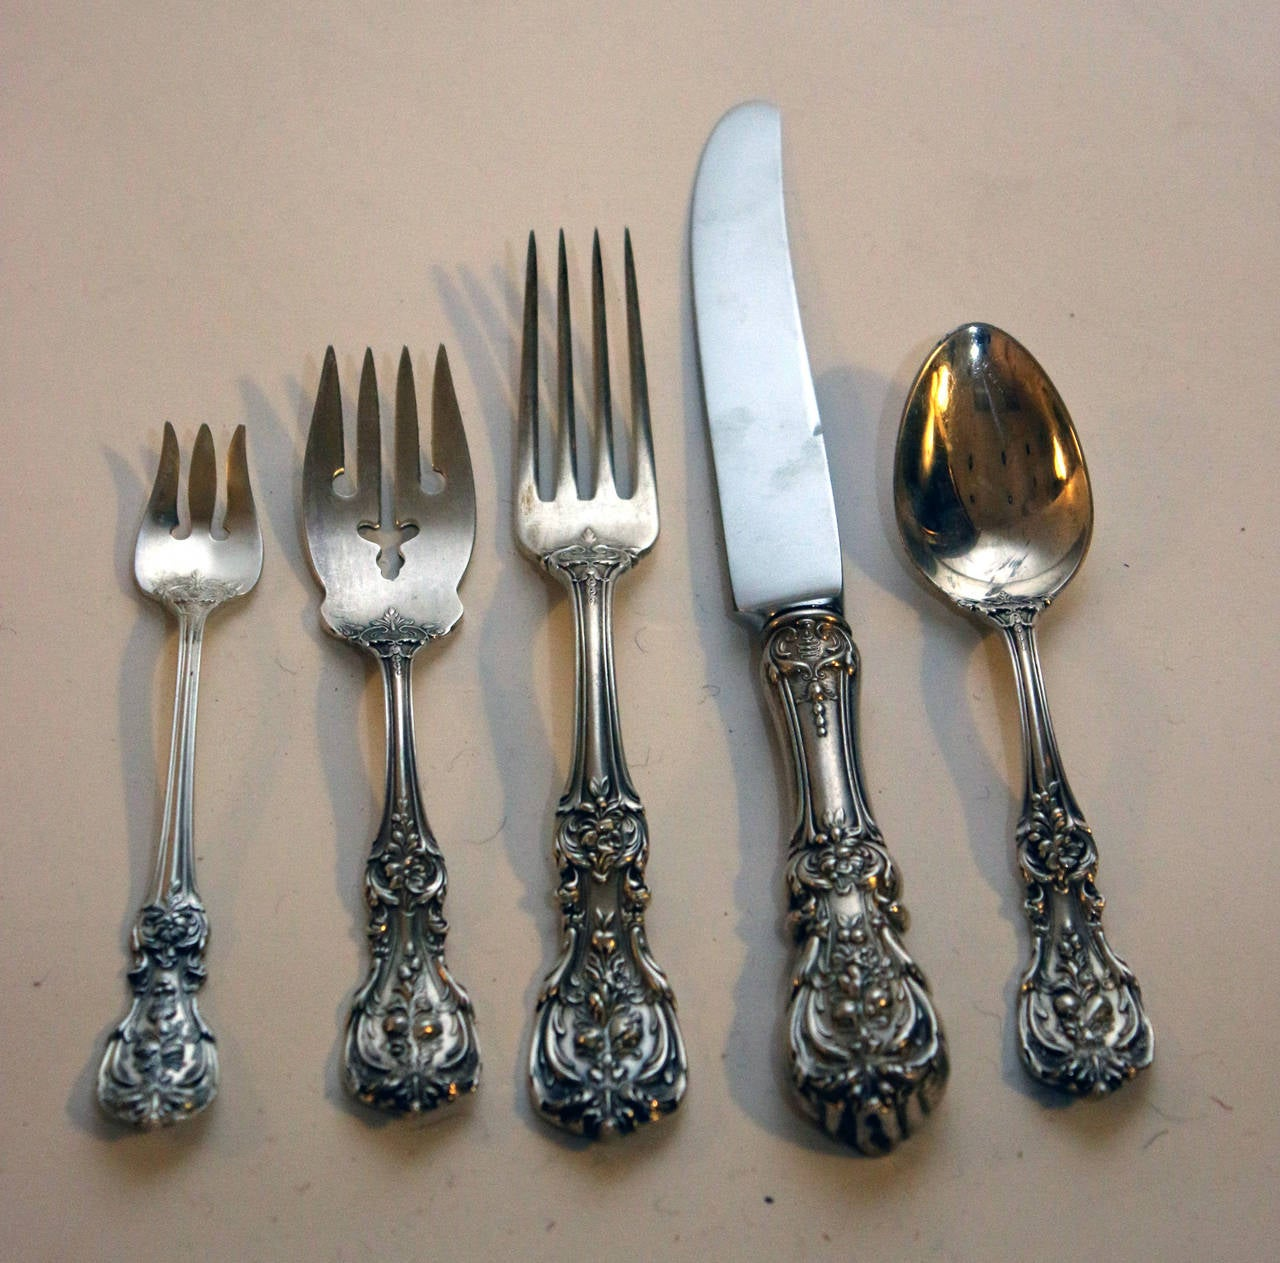 Classic set of Francis I was made by the prestigious firm of Reed and Barton silver company, Taunton, Mass. The sterling silver pattern was introduced in 1907,  (I have also seen idates of 1906 and 1908,) after the design work by Ernest Meyer. His